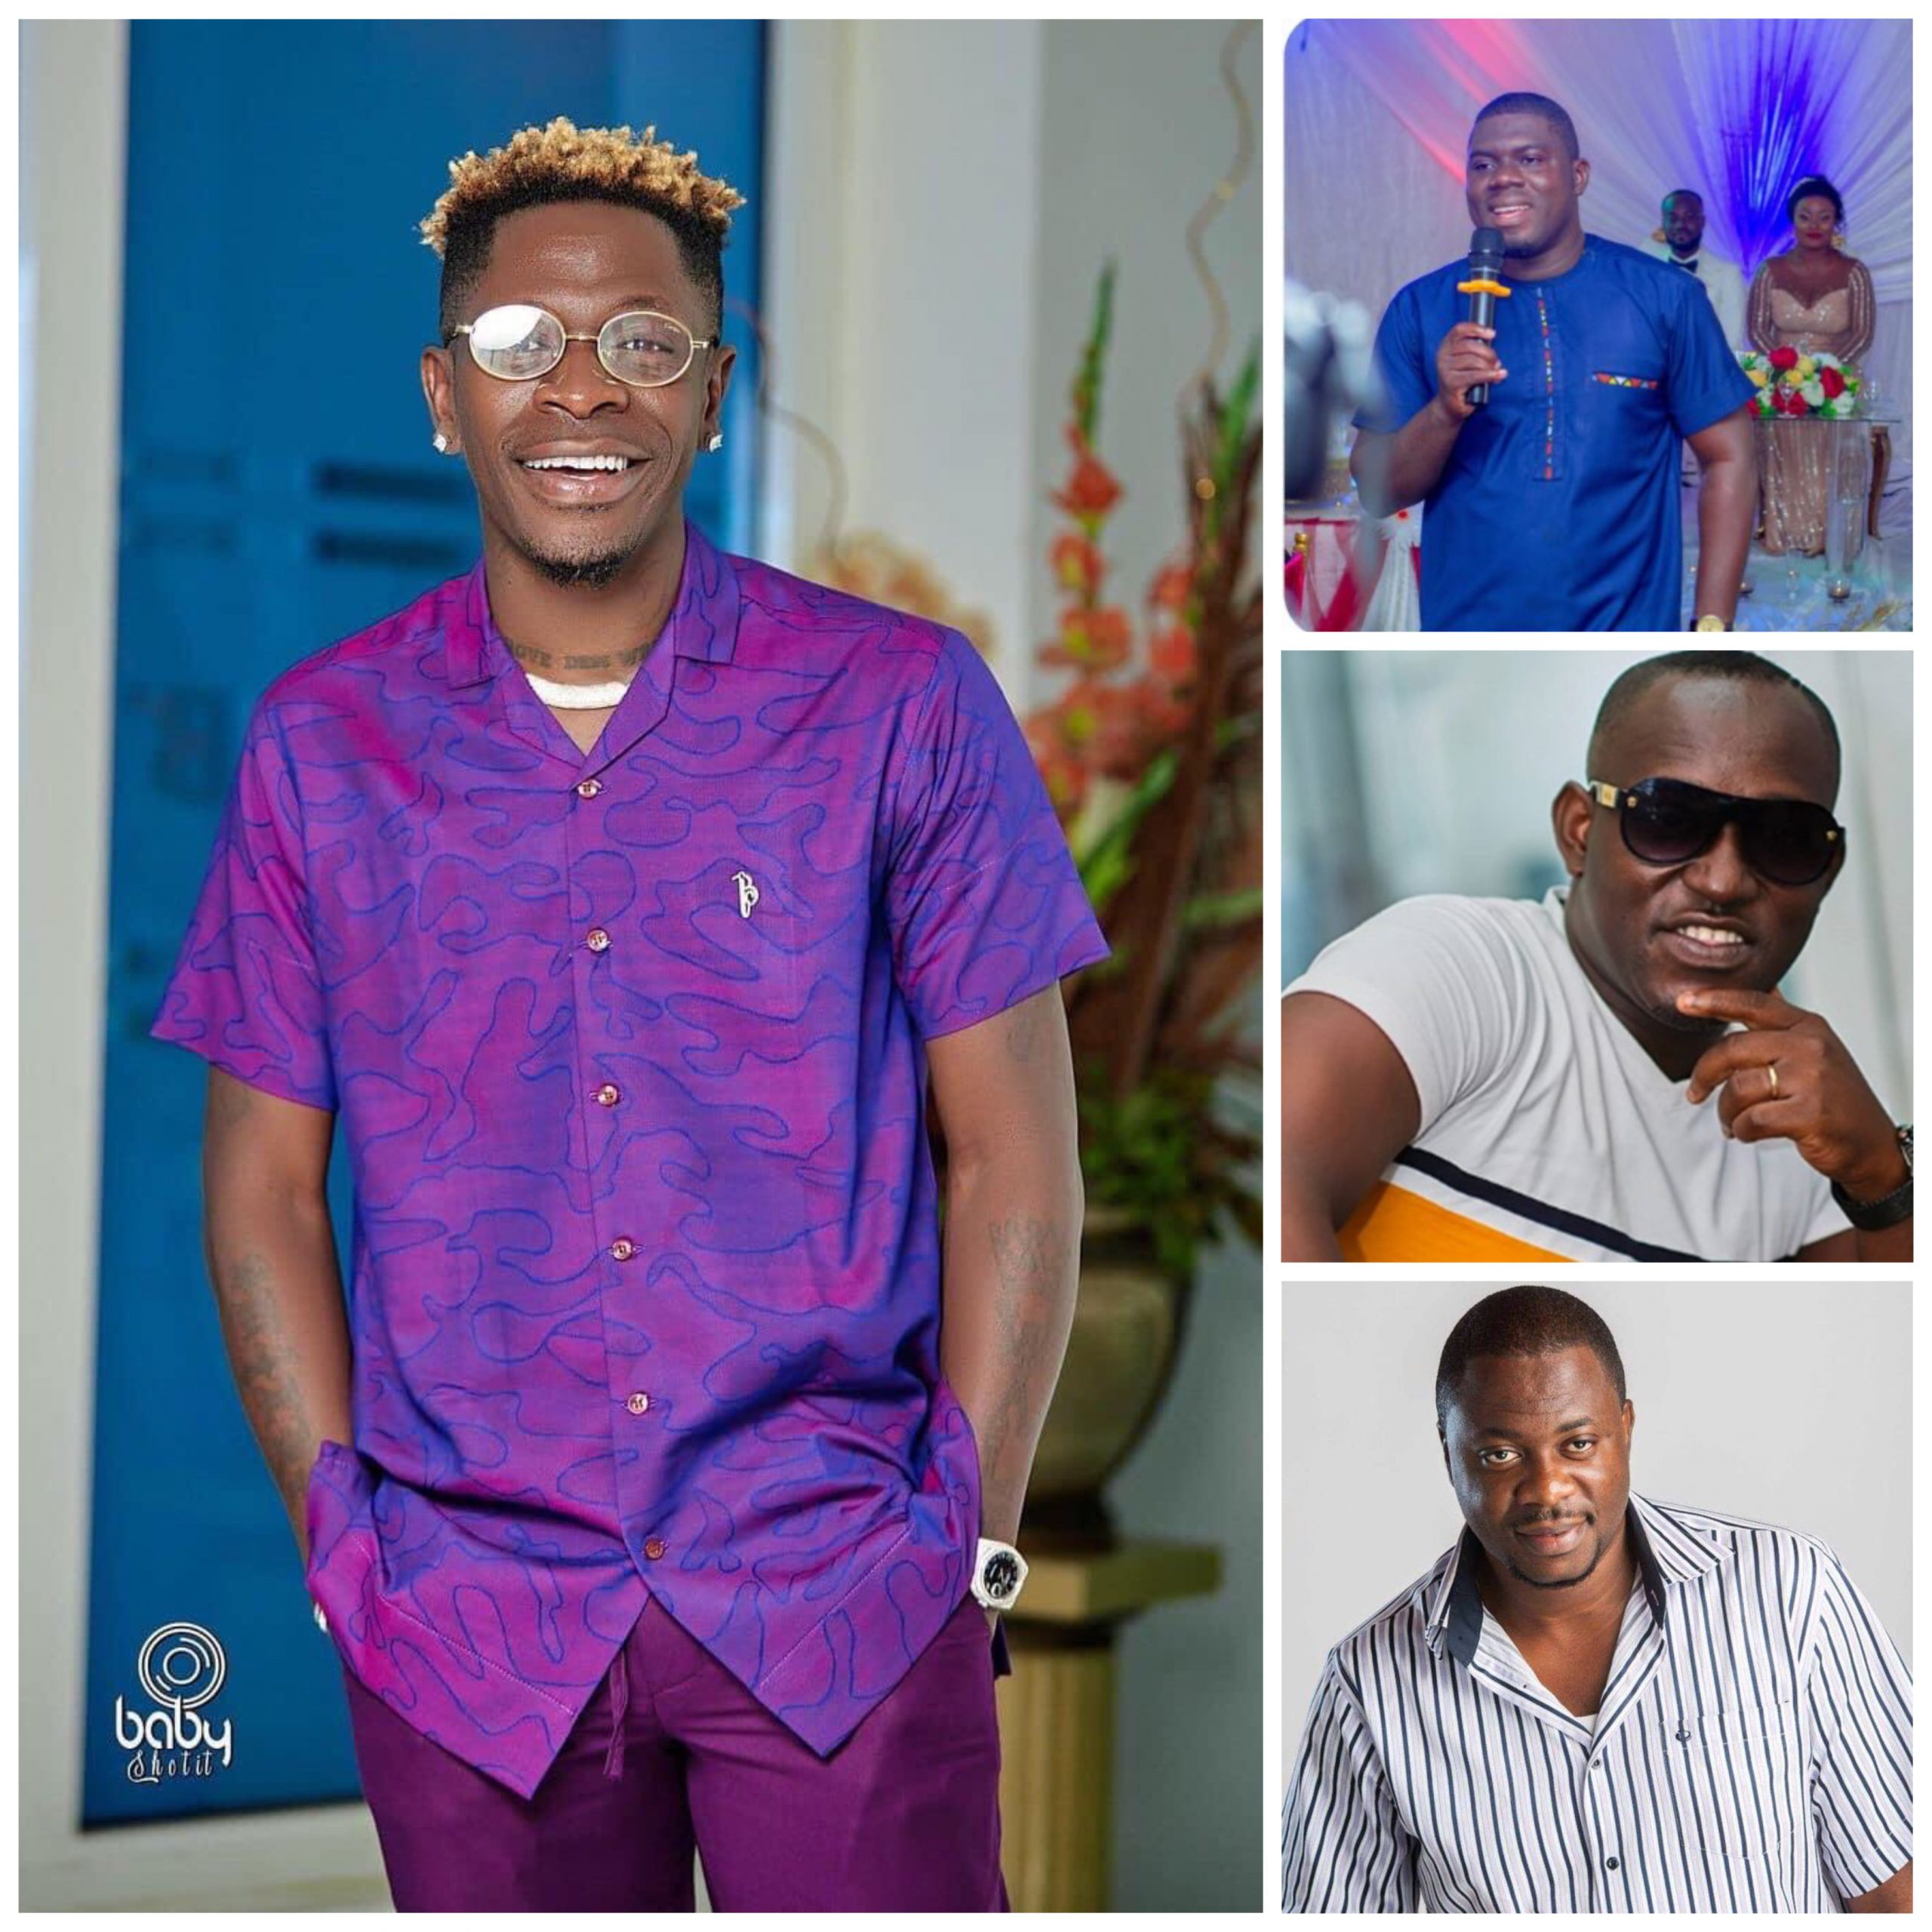 Showbiz Pundits Reacts To Shatta Wale Clarifying That His Exim Bank Ambassadorial Deal Didn't Come With Money